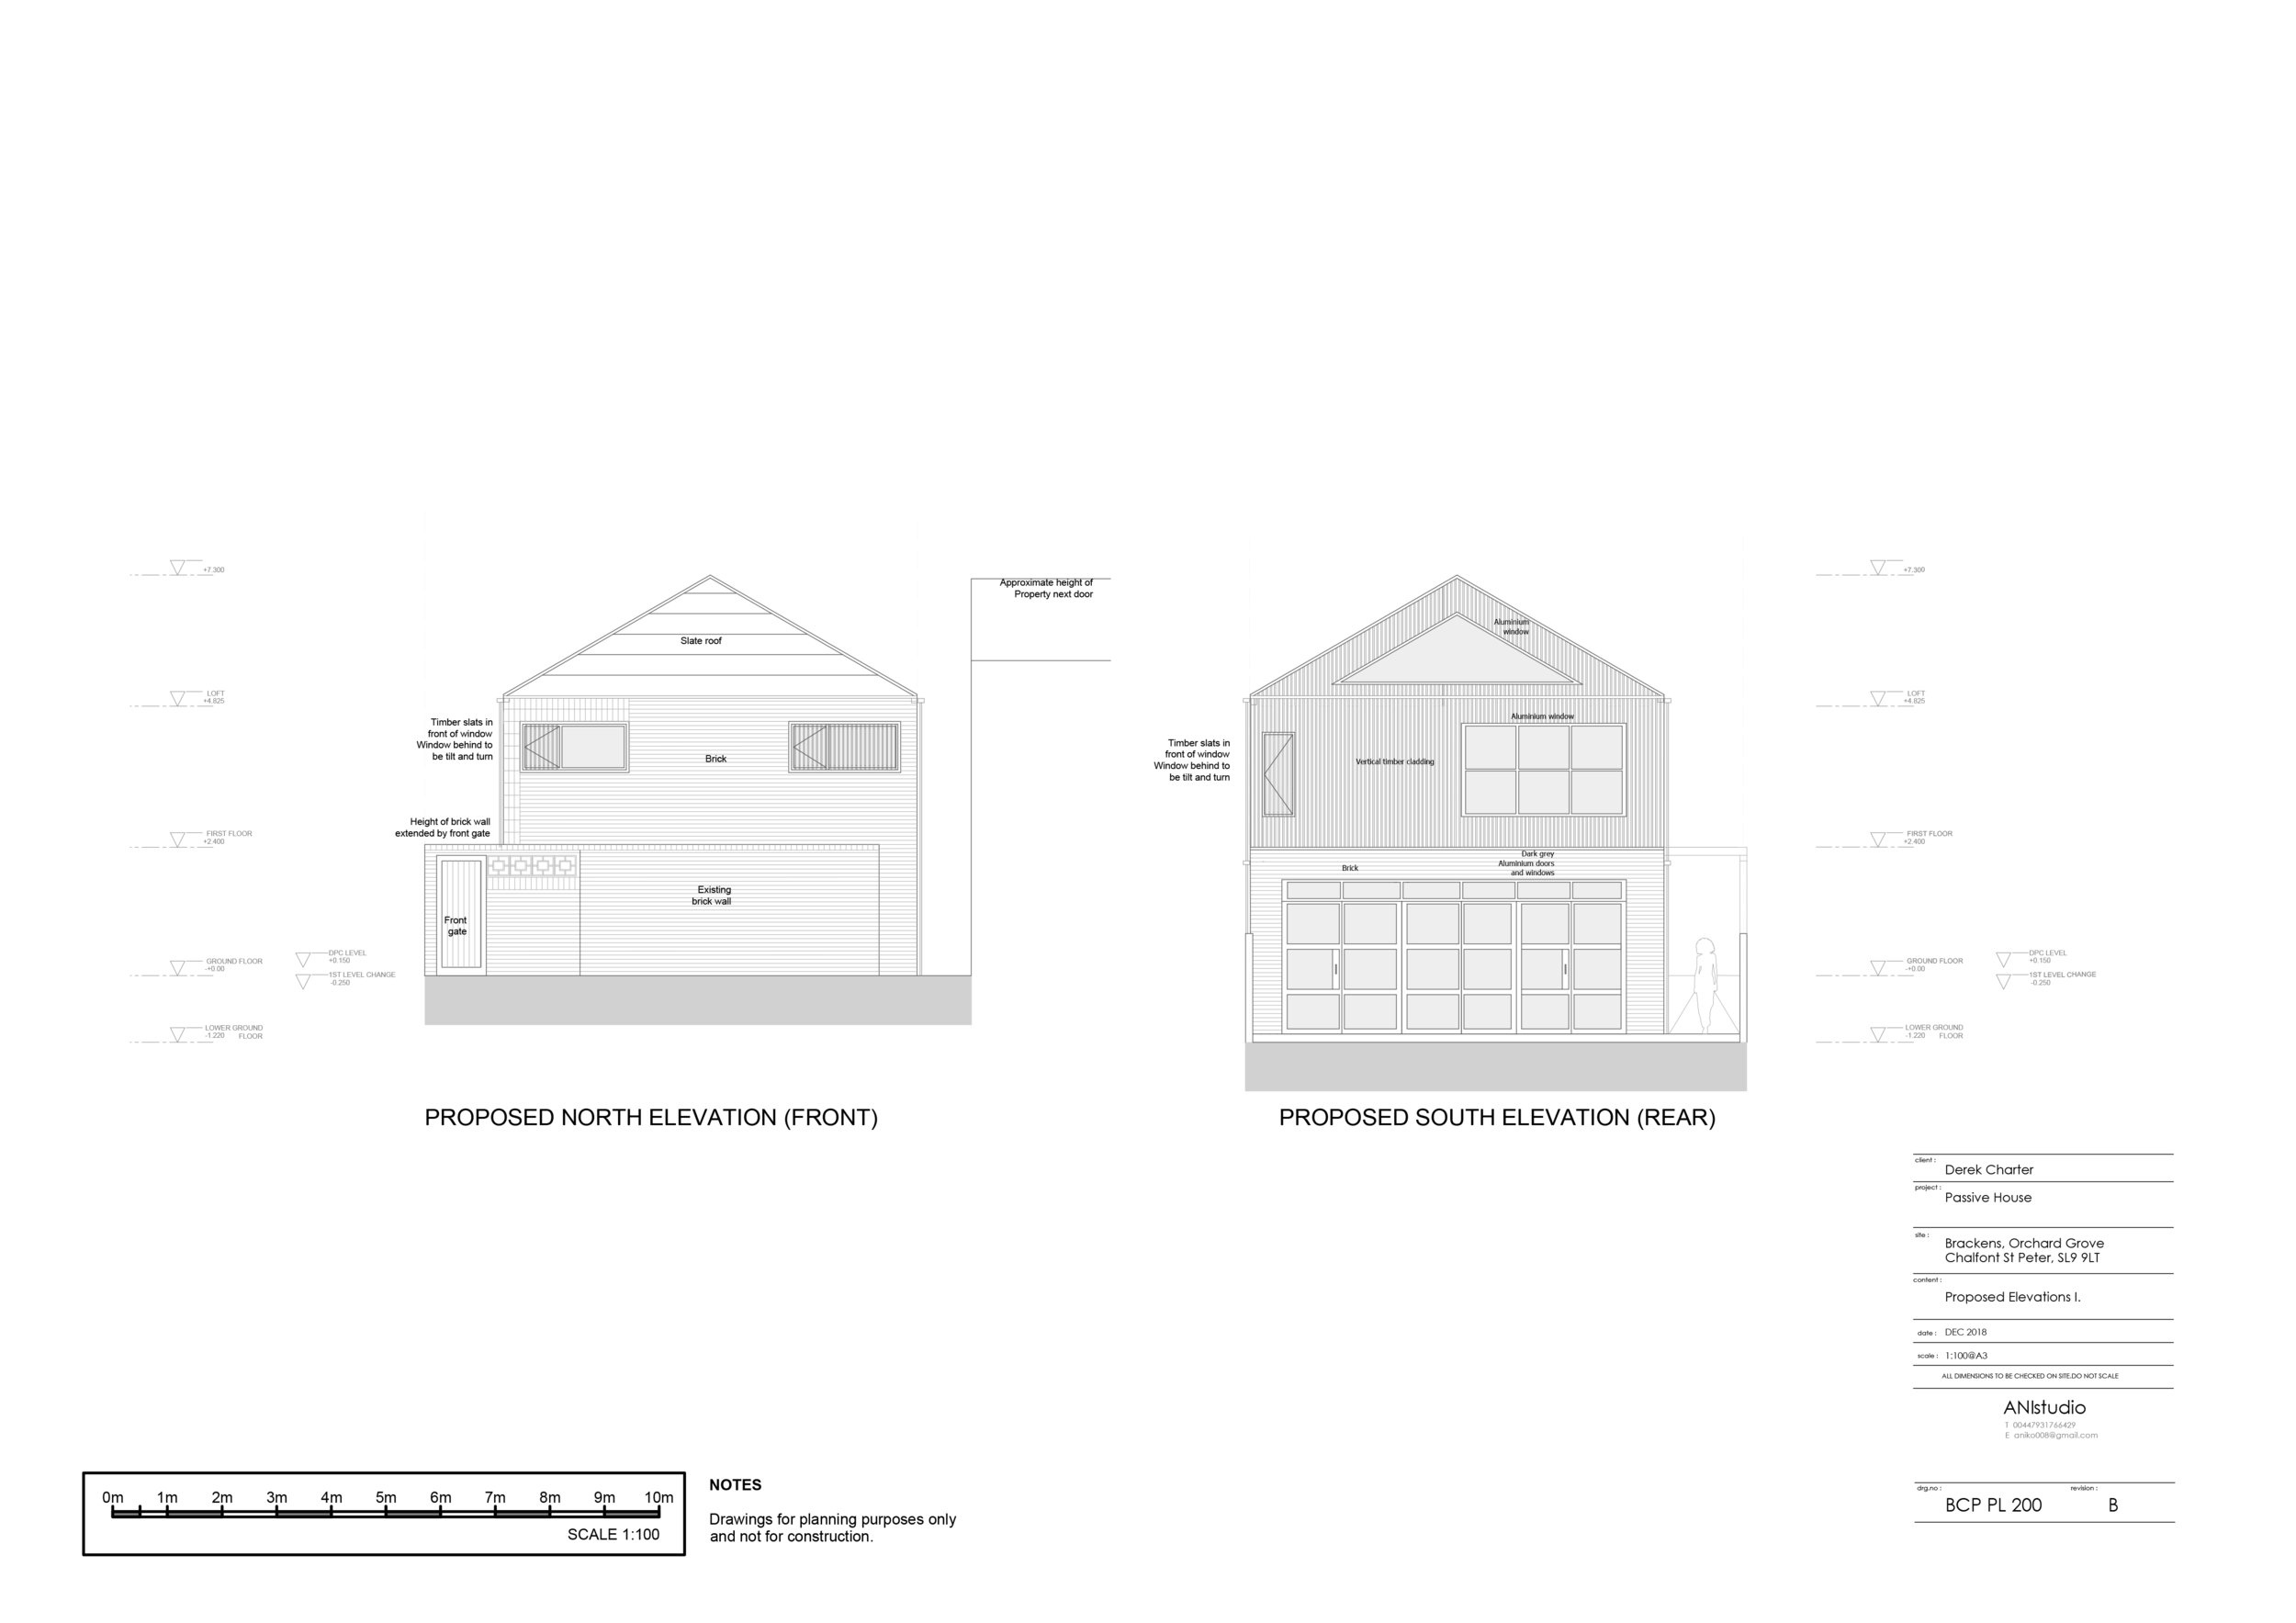 BCP PL 200_PROPOSED ELEVATIONS_REV B_2.jpg